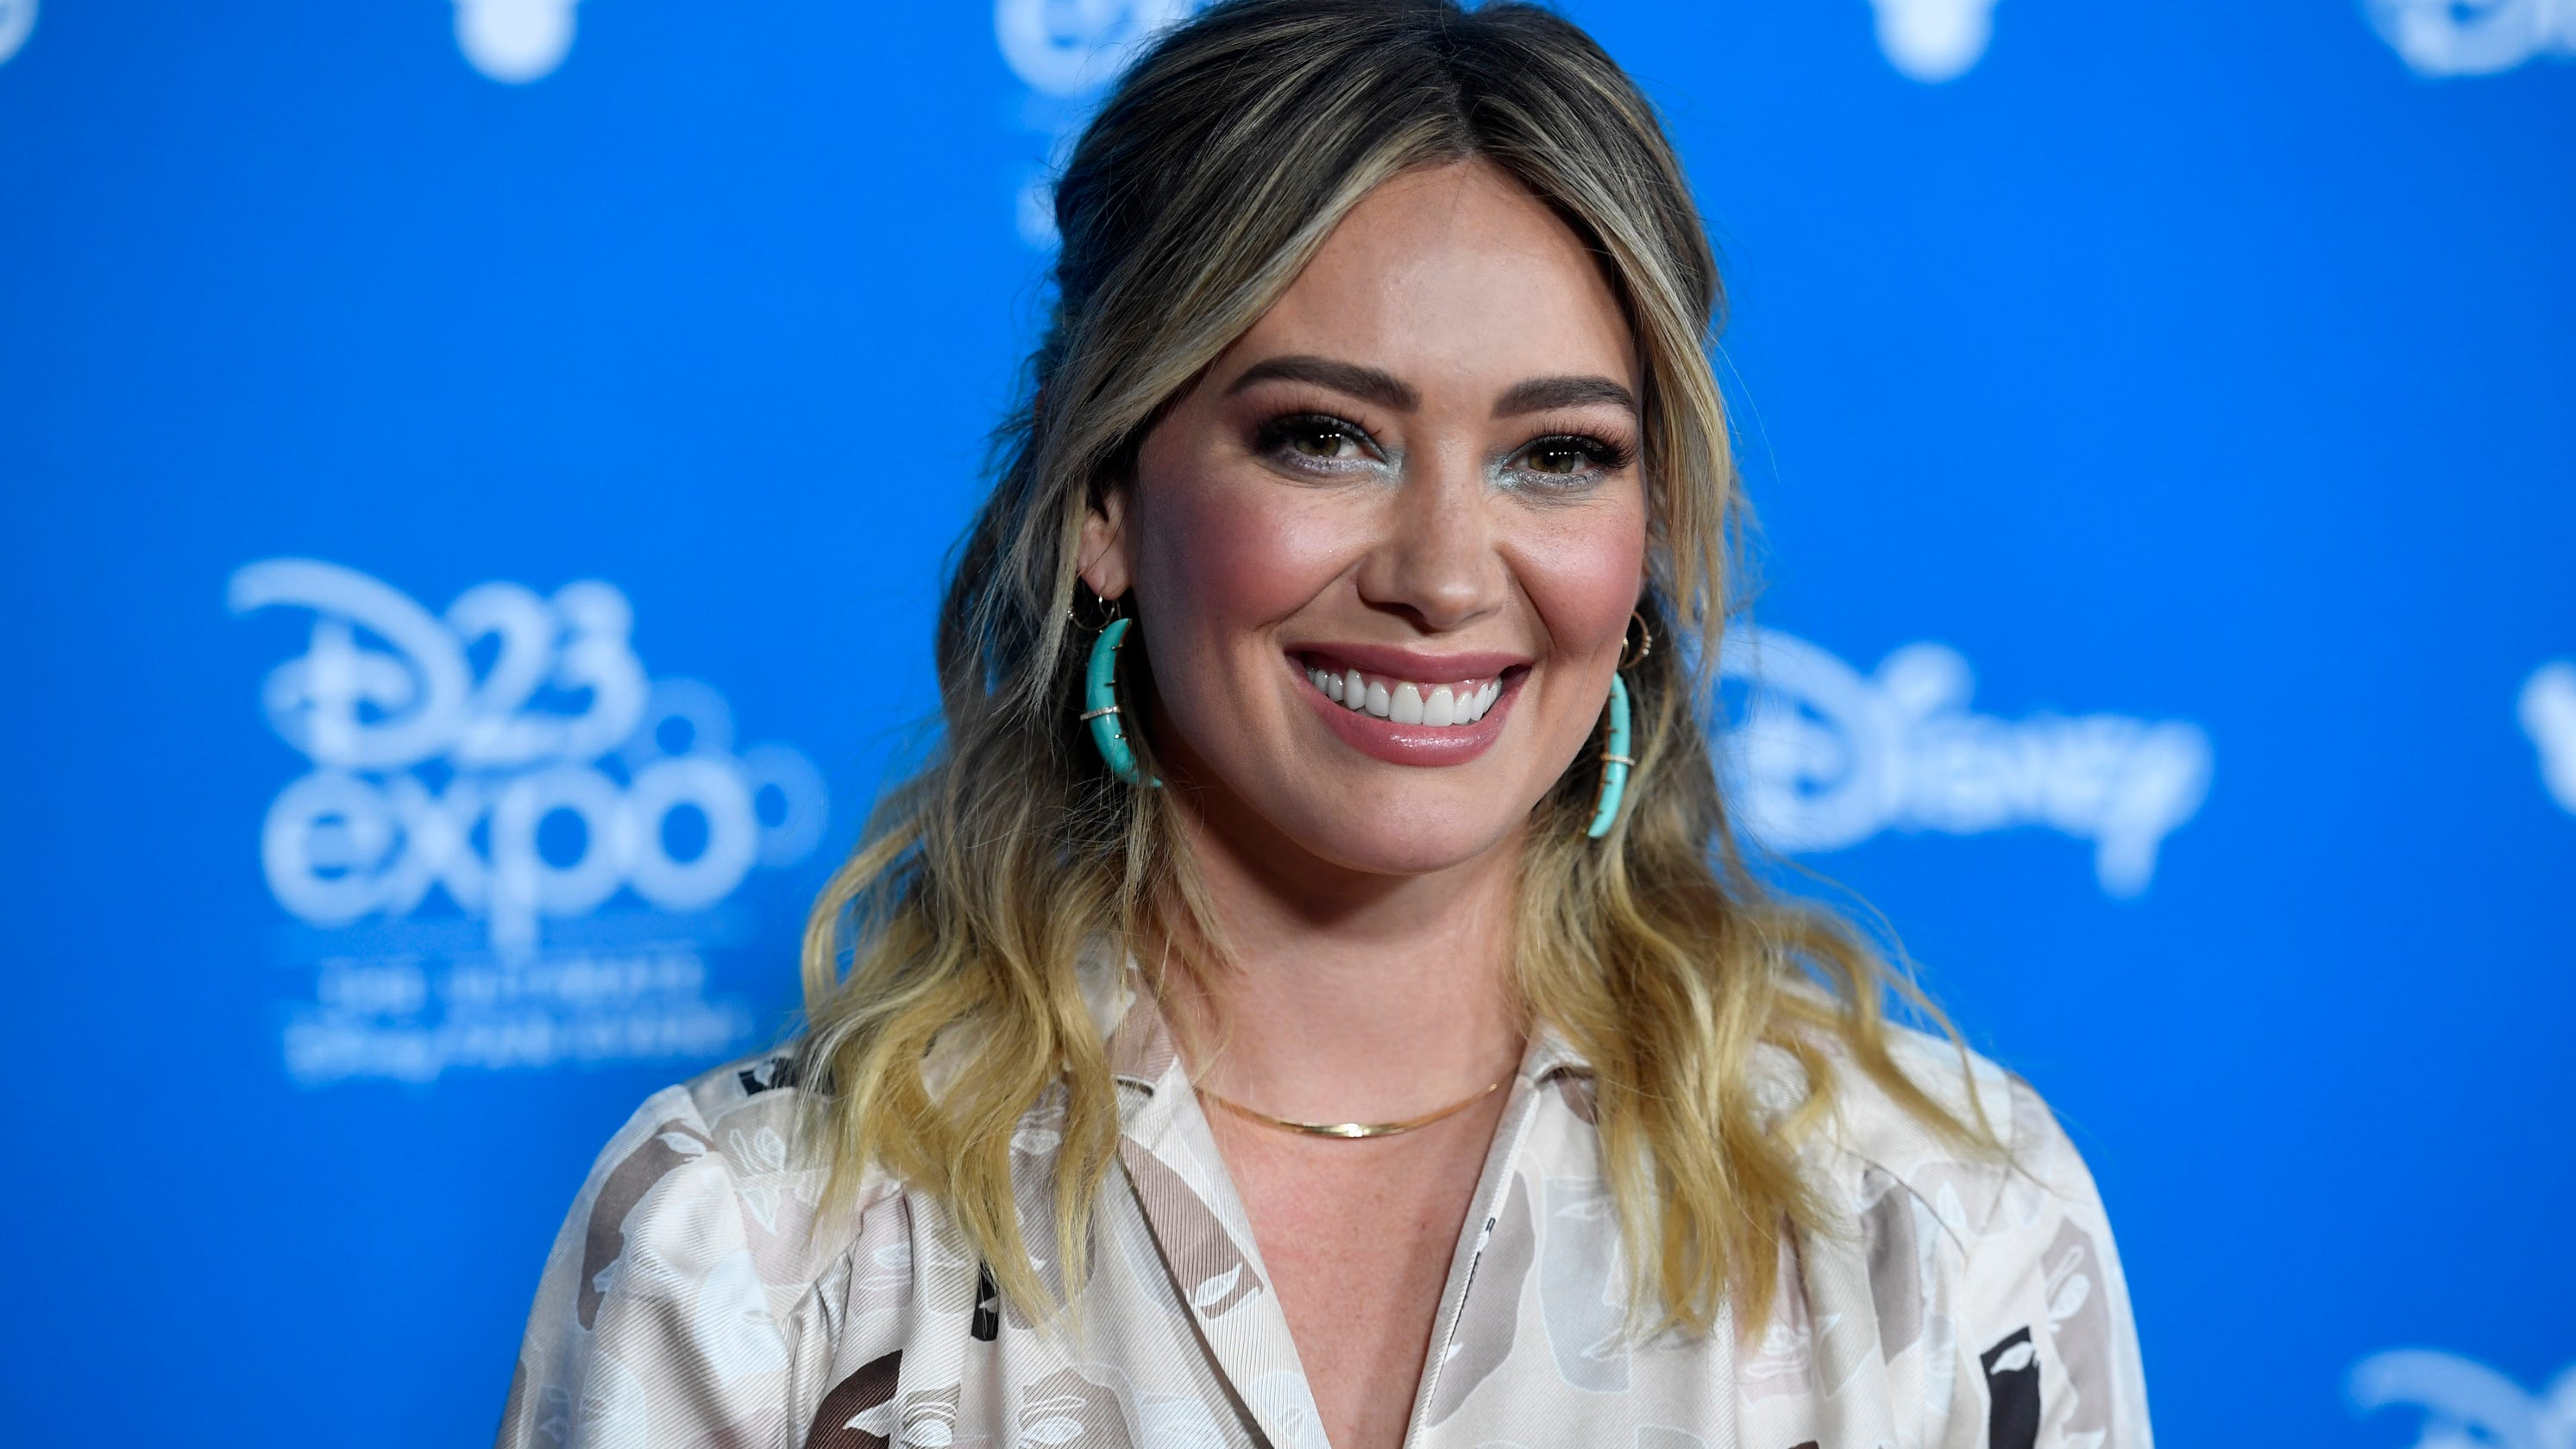 Hilary Duff confronts photographer taking pics at son's game: 'This is stalking minors' thumbnail